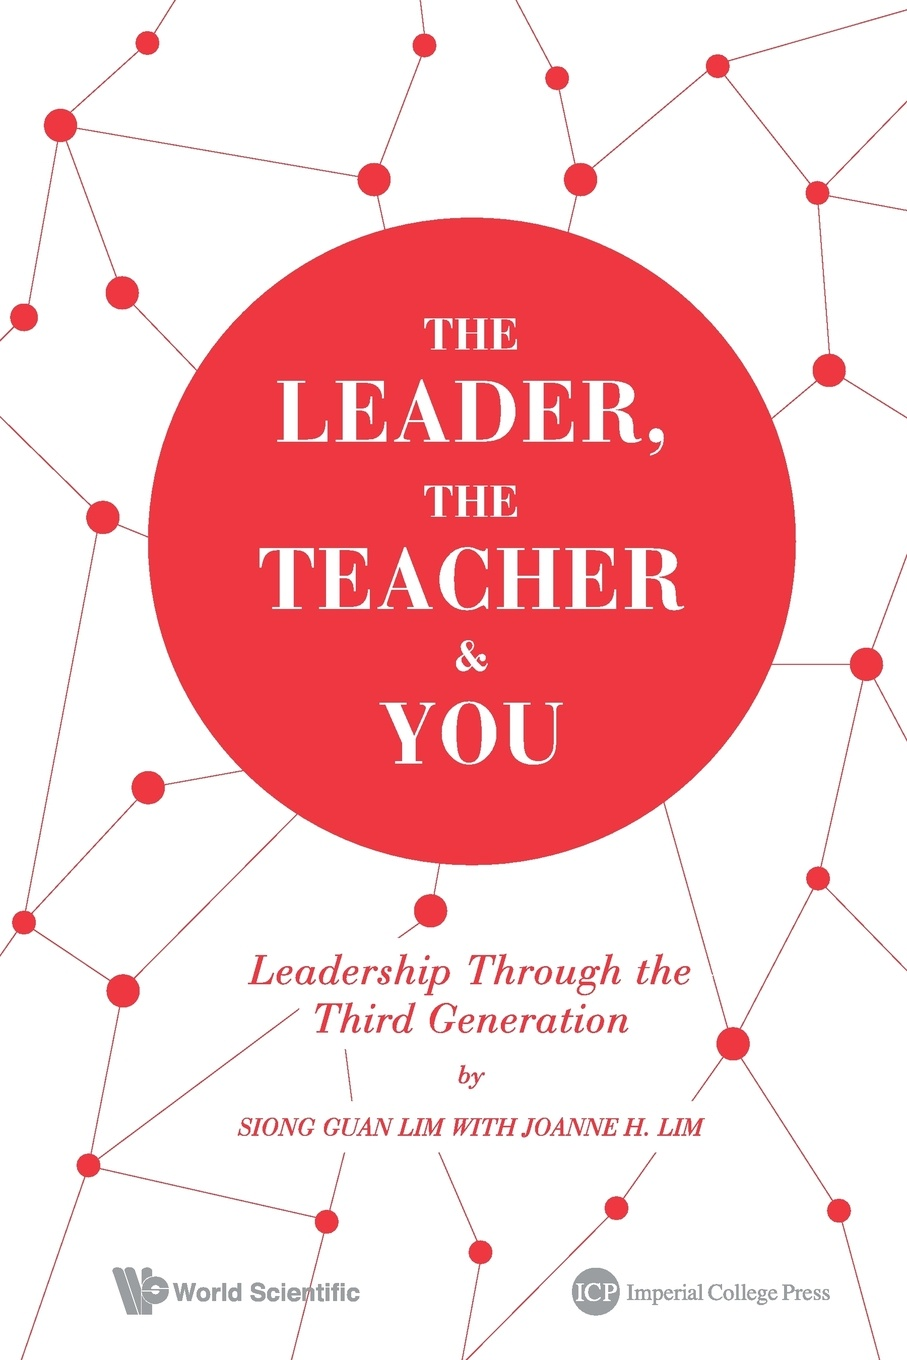 SIONG GUAN LIM, JOANNE H LIM THE LEADER, THE TEACHER & YOU. LEADERSHIP THROUGH THE THIRD GENERATION michelle collay everyday teacher leadership taking action where you are